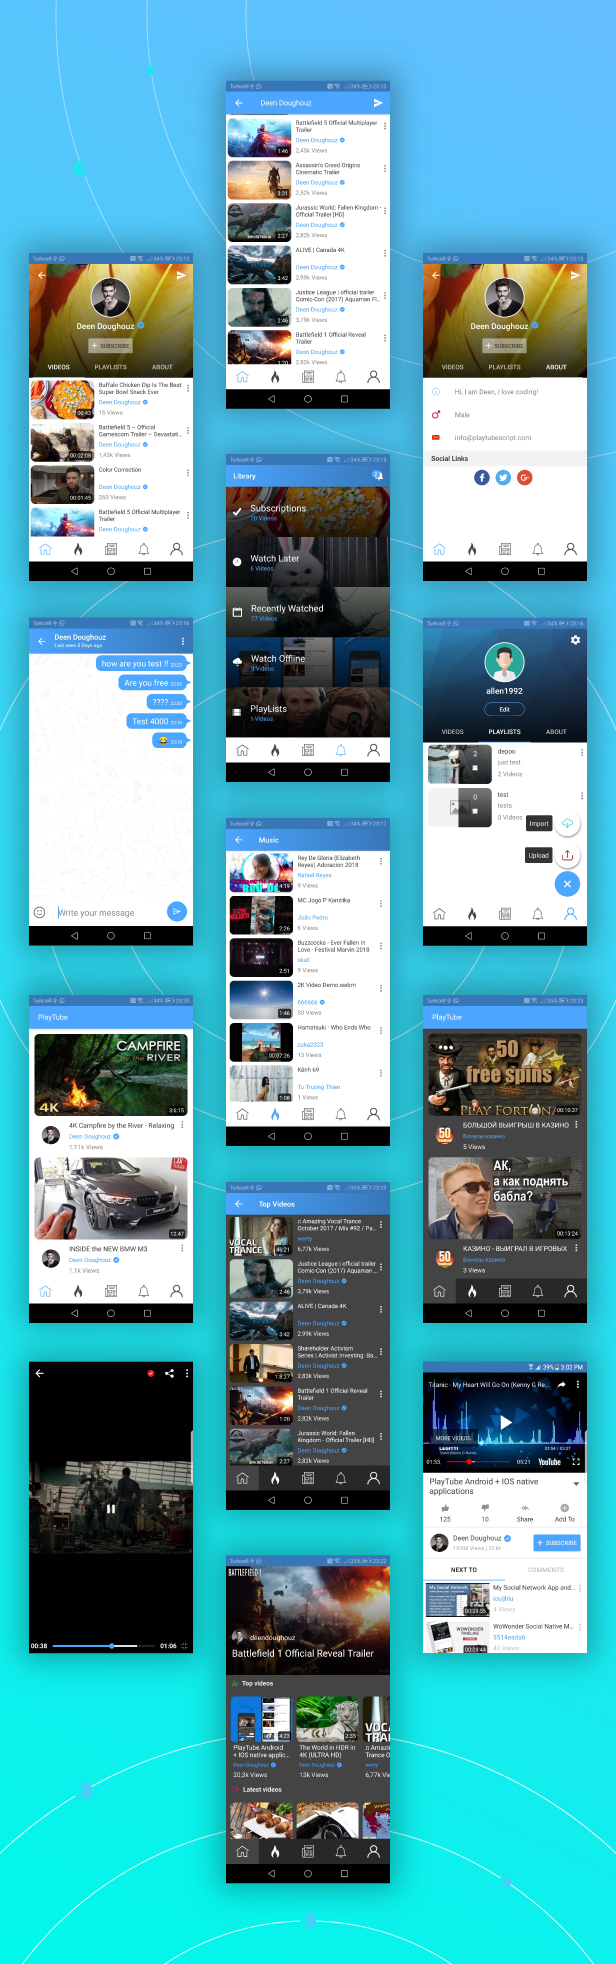 PlayTube - Sharing Video Script Mobile Android Native Application - 4